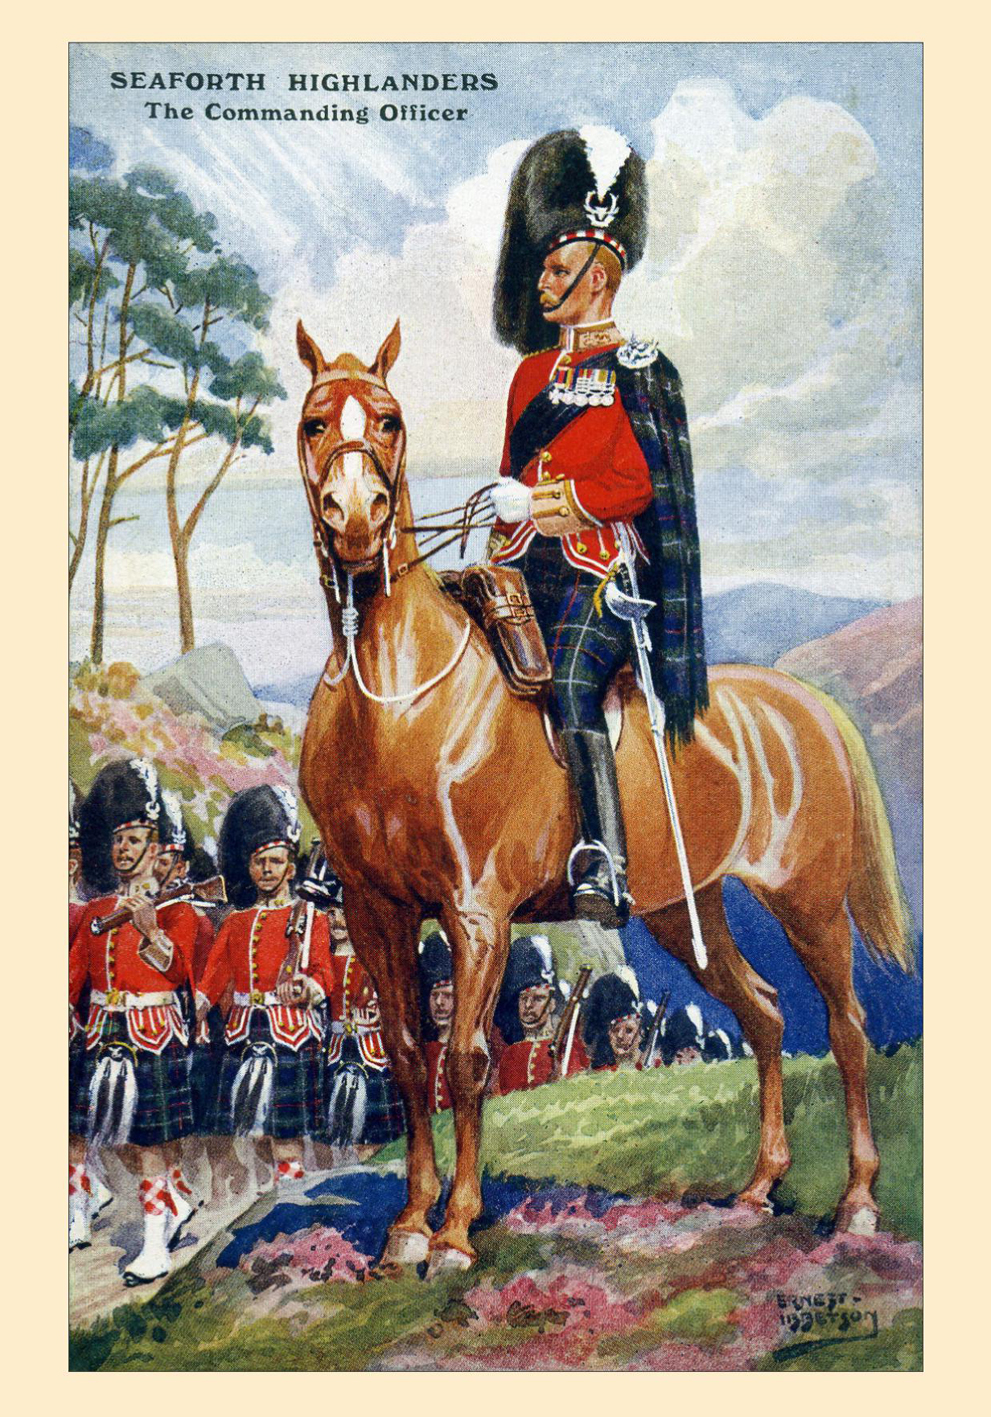 Postcard - Seaforth Highlanders The Commanding Officer